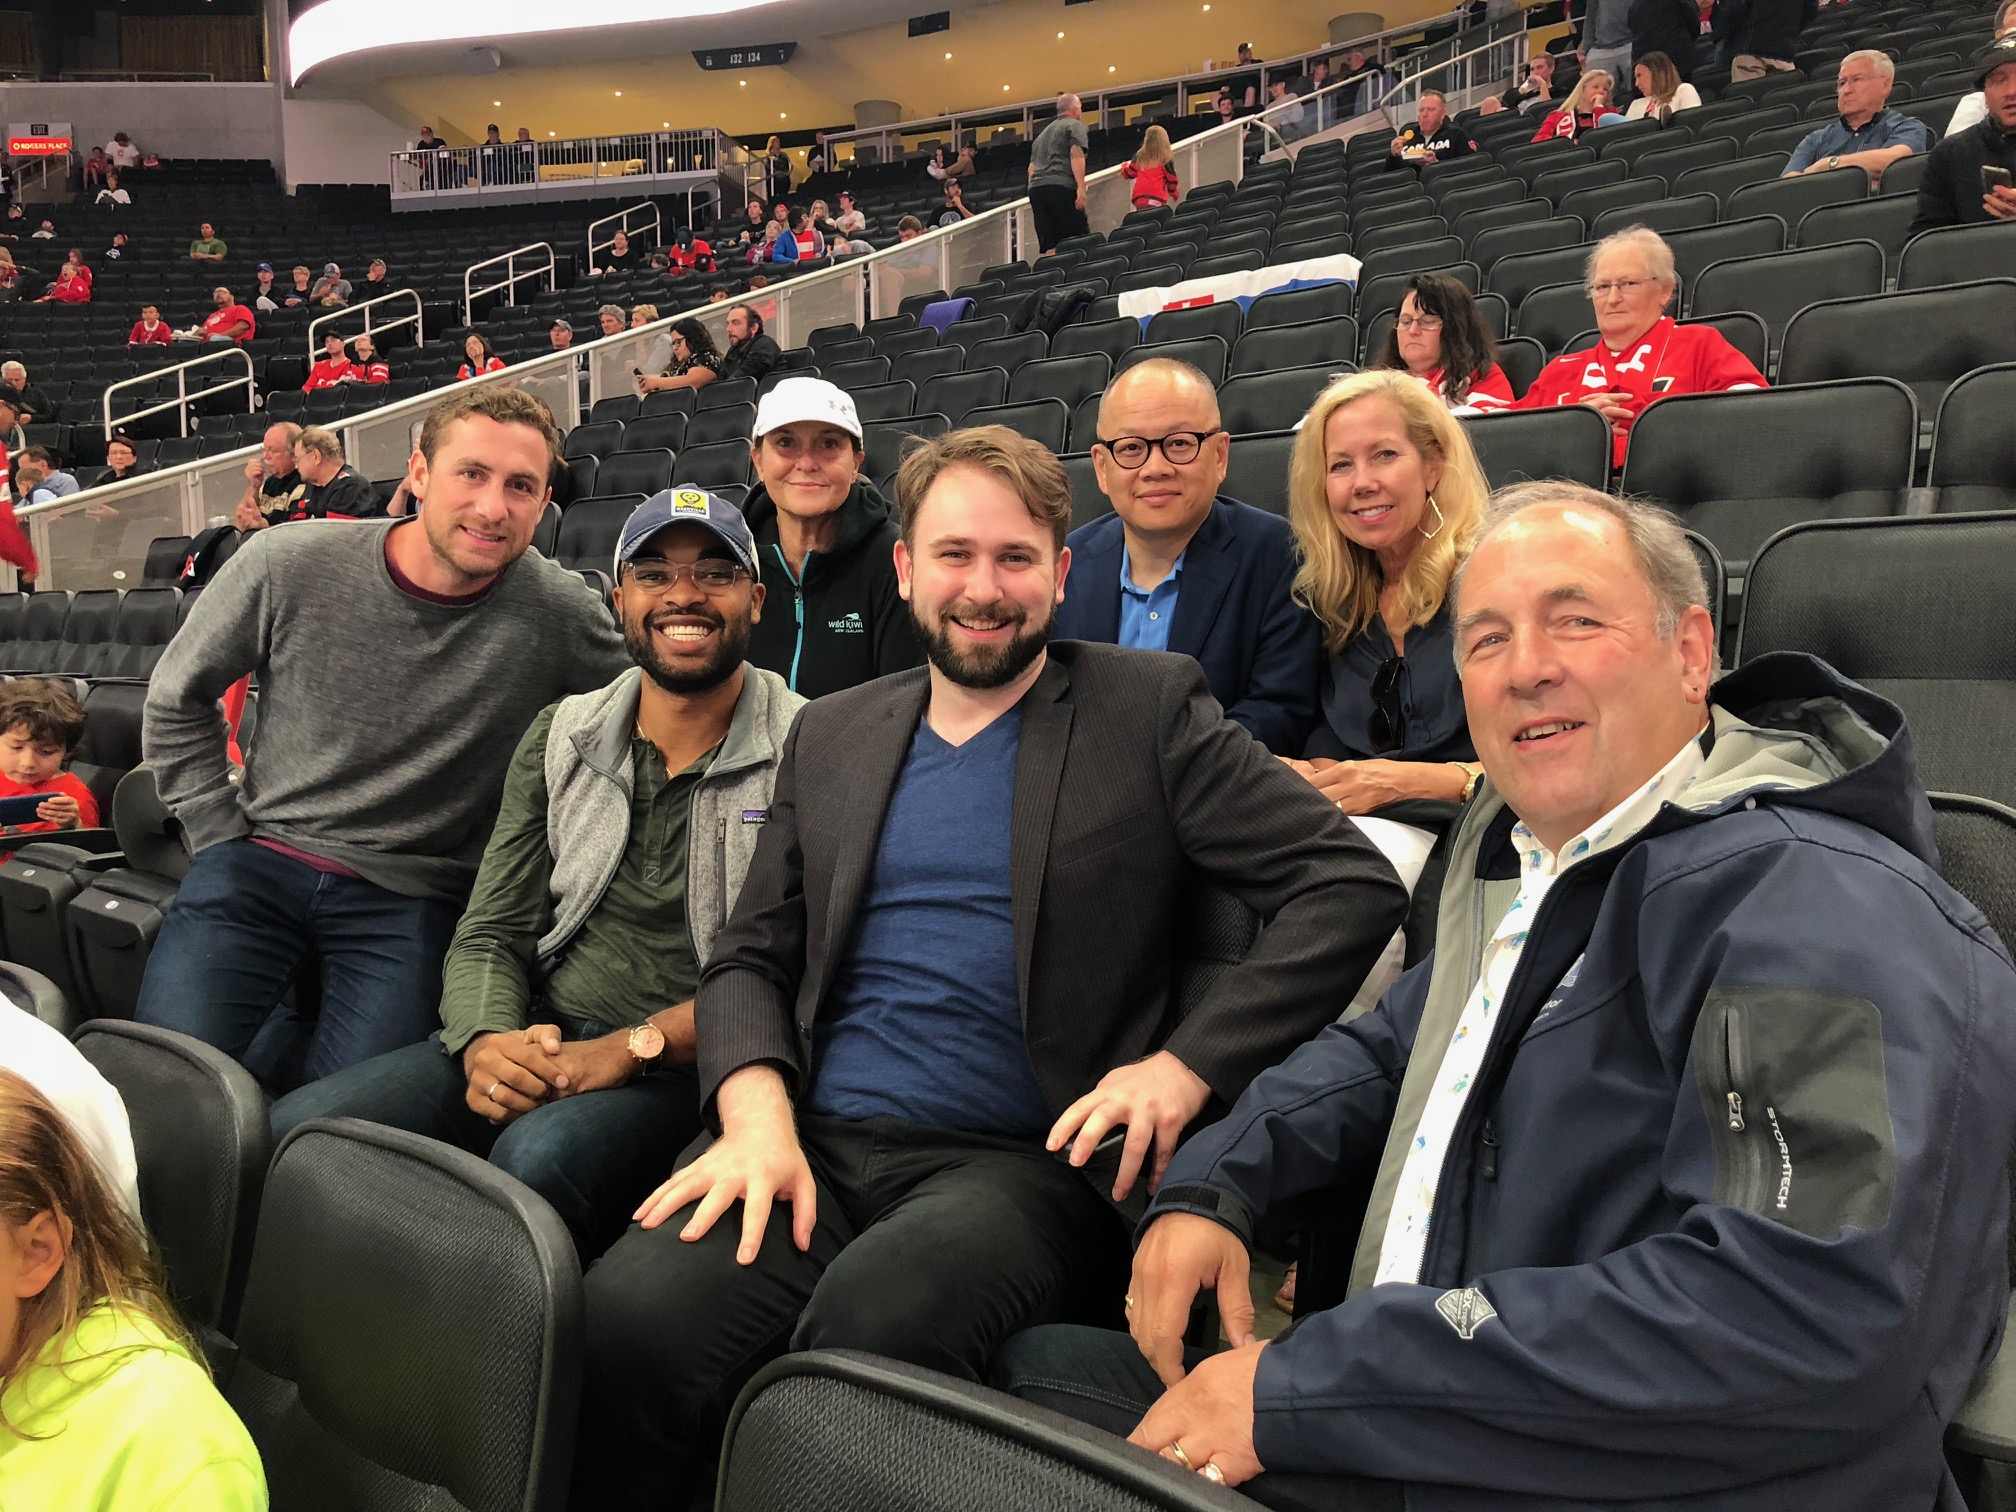 Sister Cities of Nashville delegates and Edmonton representatives at a hockey game